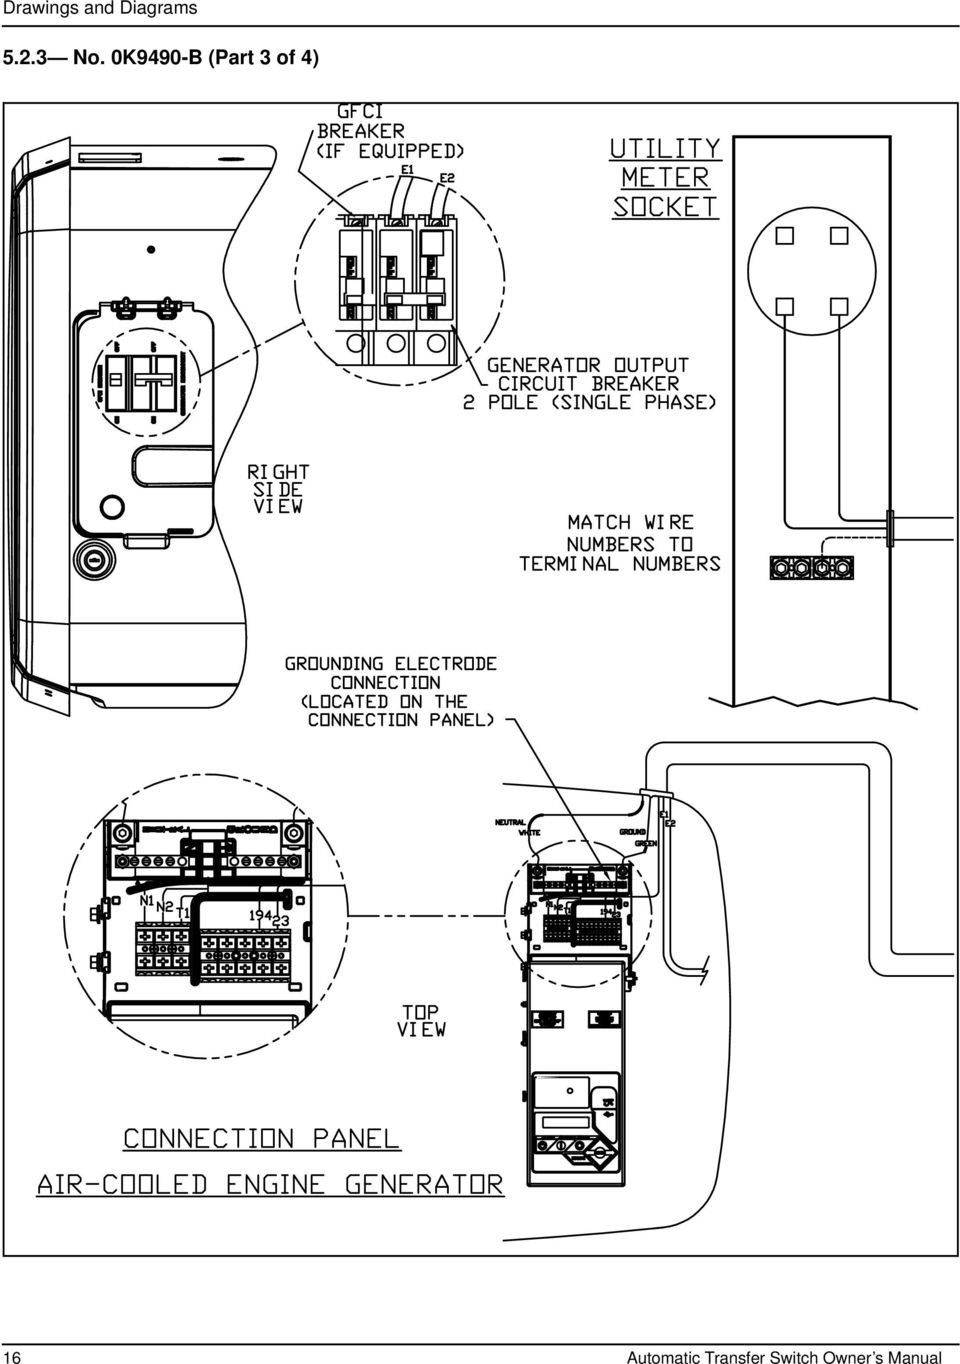 Owner S Manual For Automatic Transfer Switch Amp Service Entrance On 3 Phase Wiring 0k9490 B Part Of 4